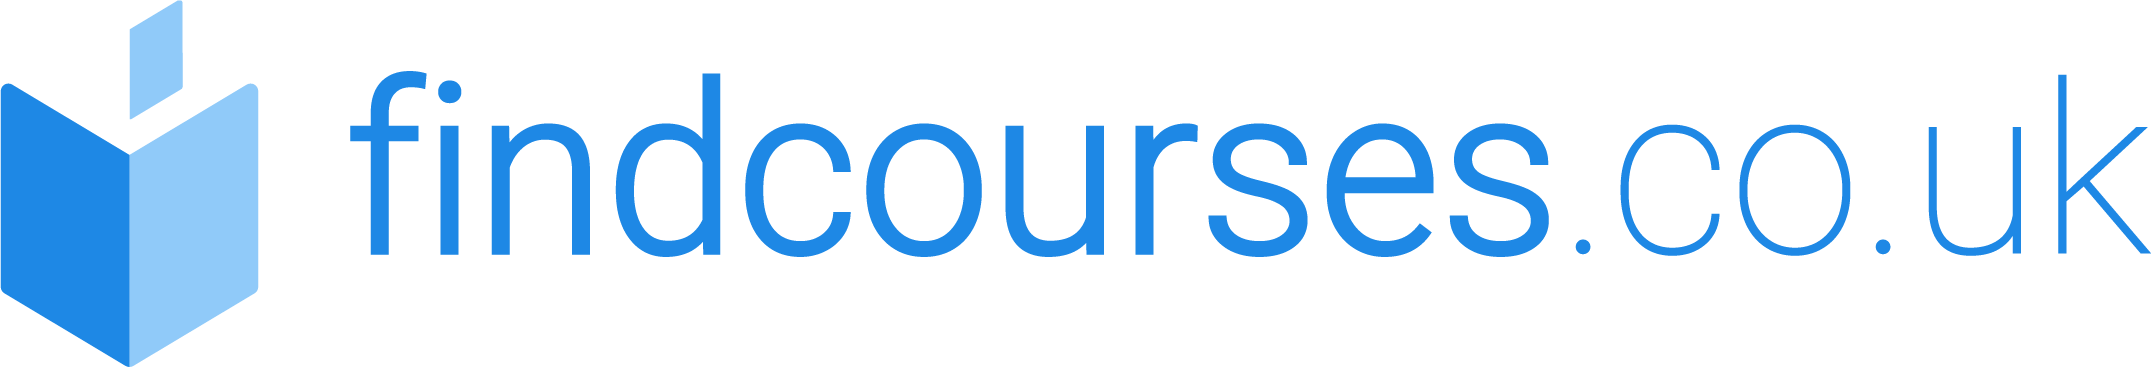 findcourses.co.uk_logo